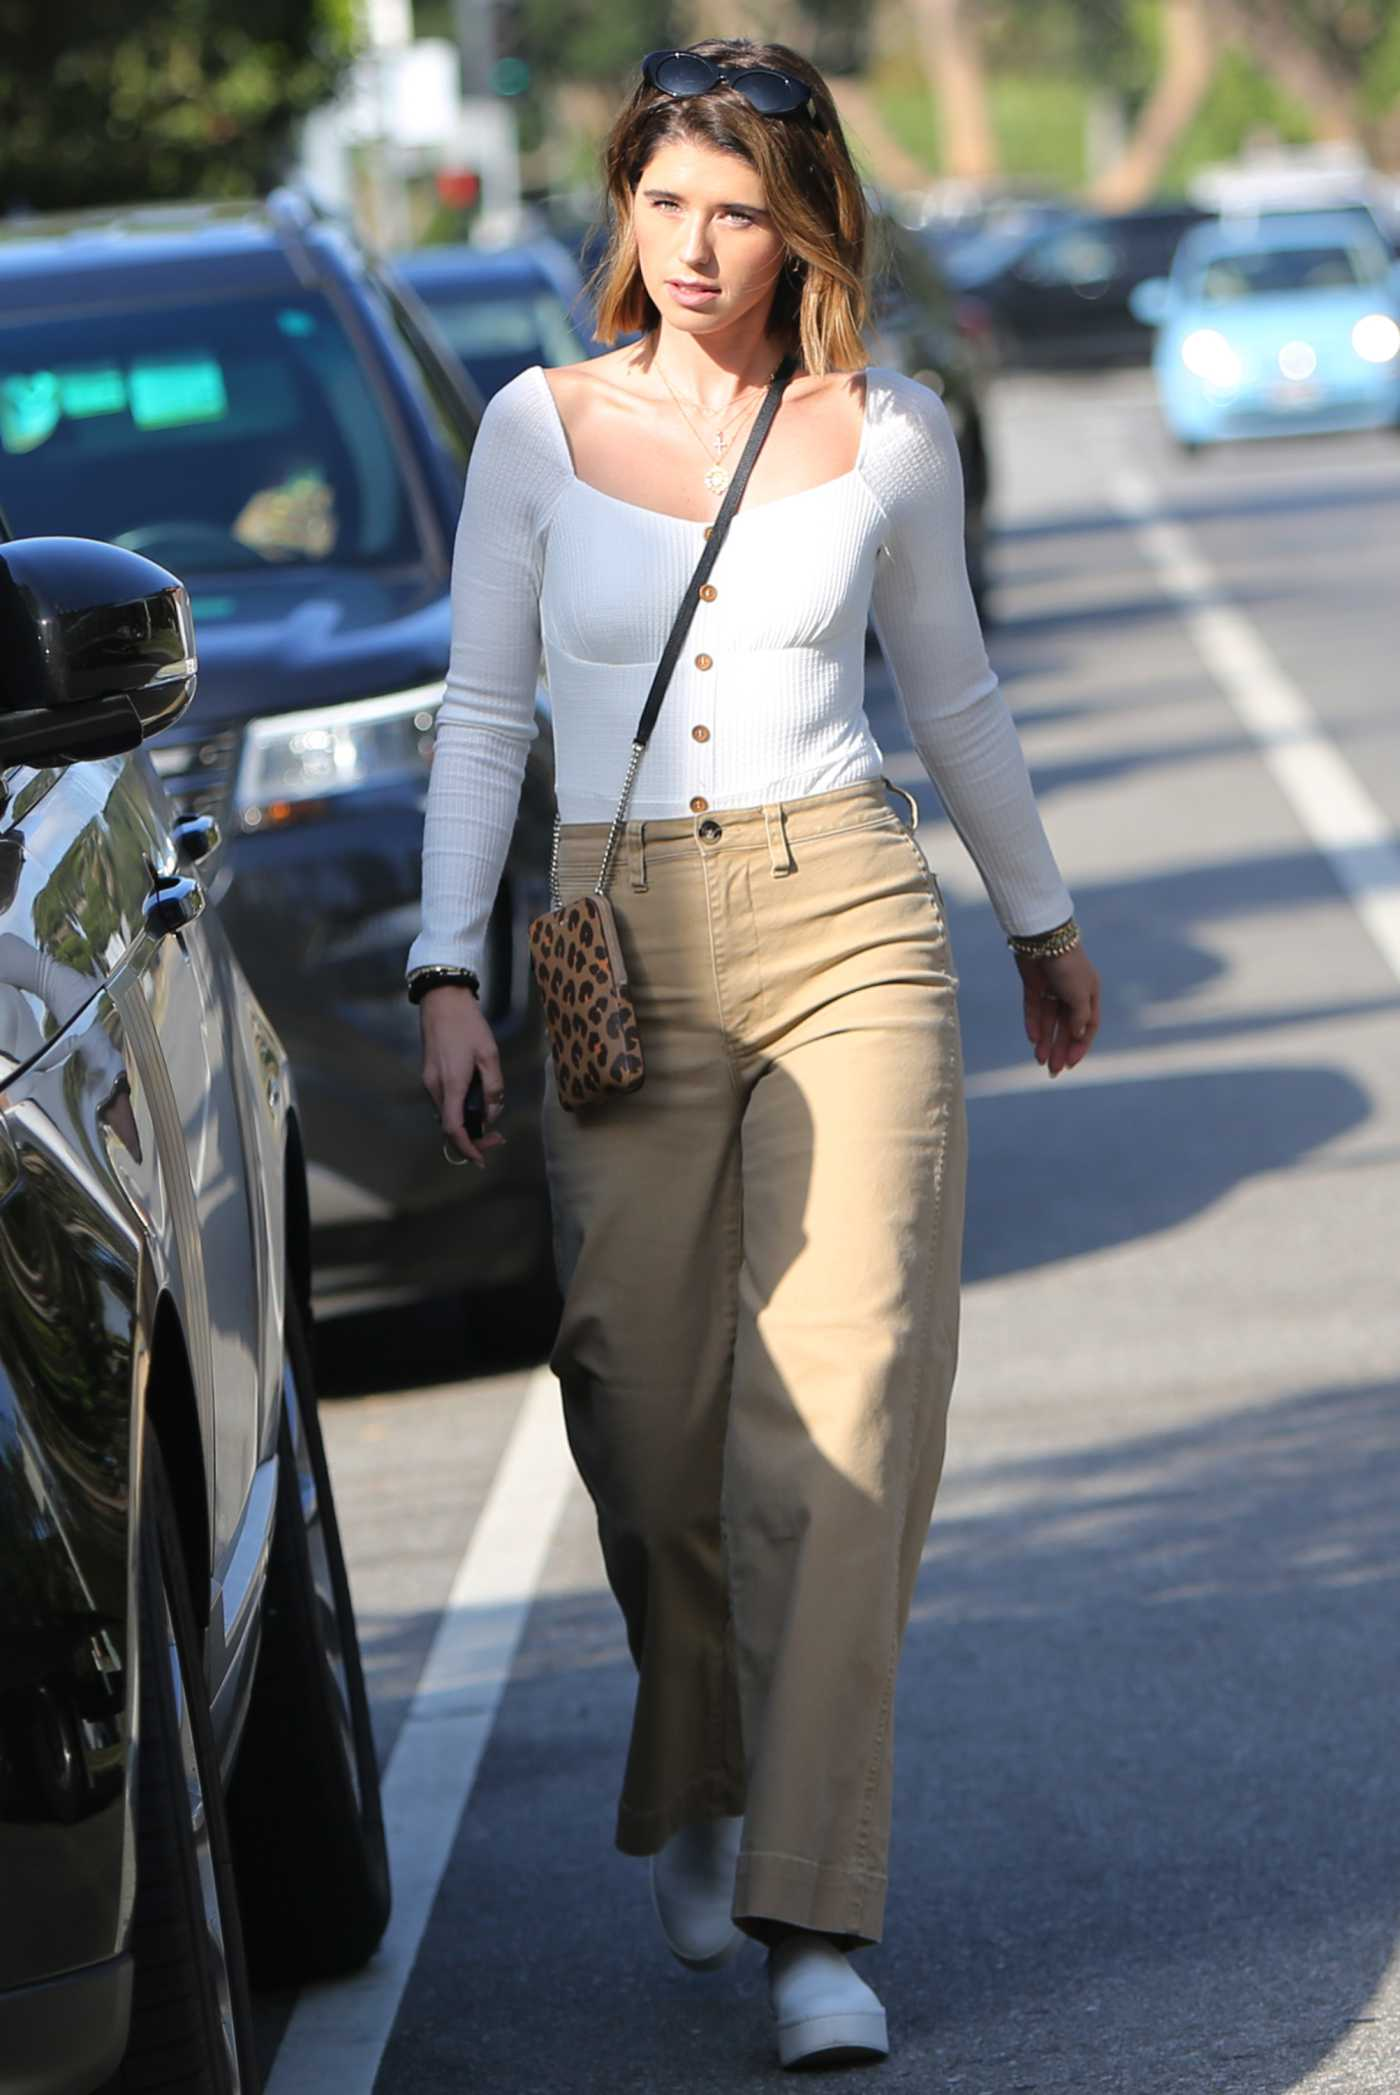 Katherine Schwarzenegger in a White Blouse Was Seen Out in Pacific Palisades 09/20/2019